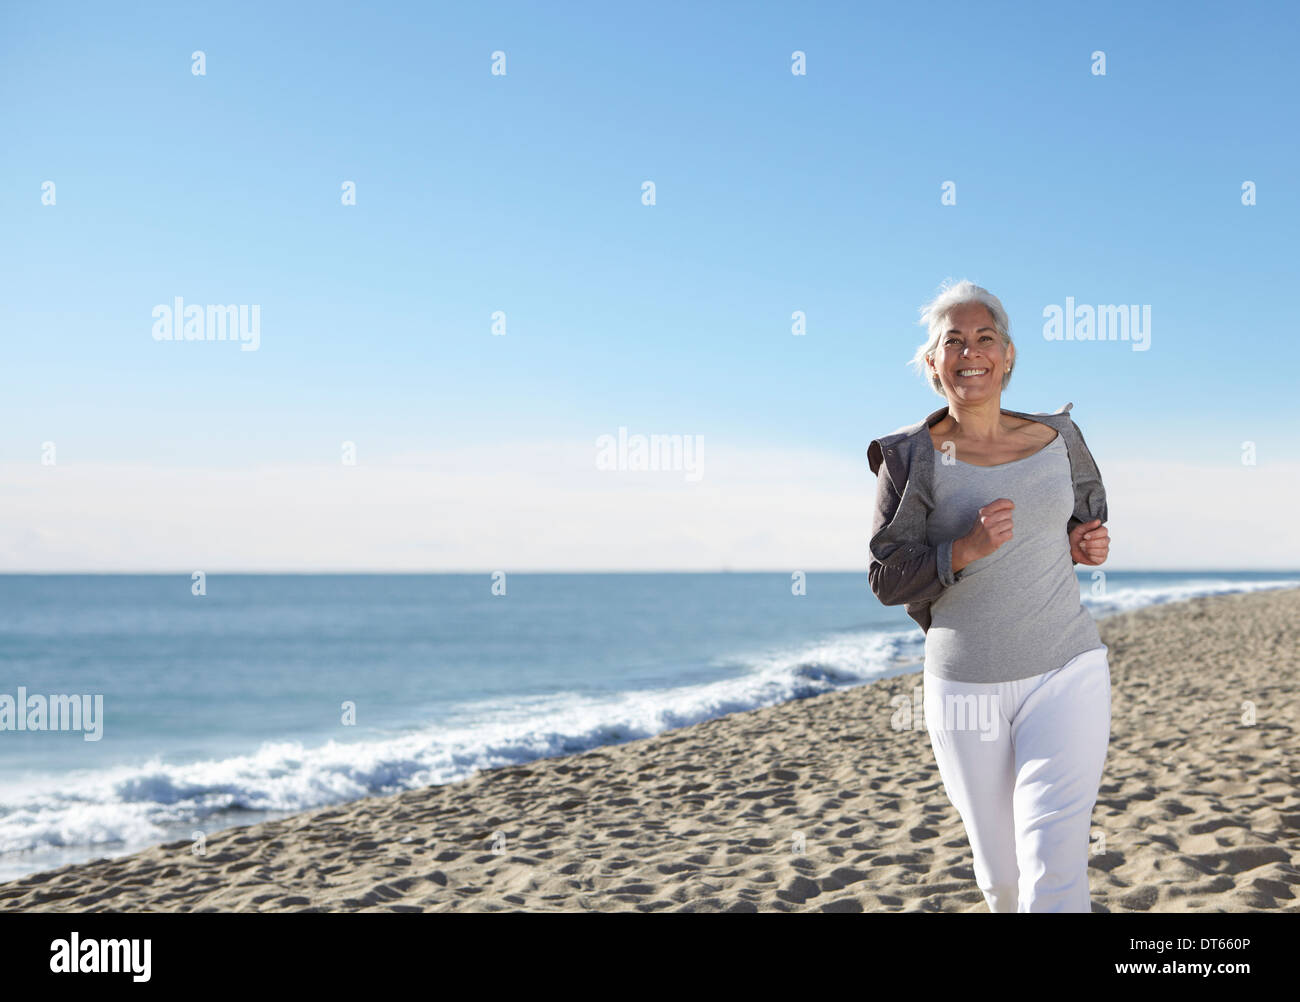 Mature woman jogging on beach - Stock Image